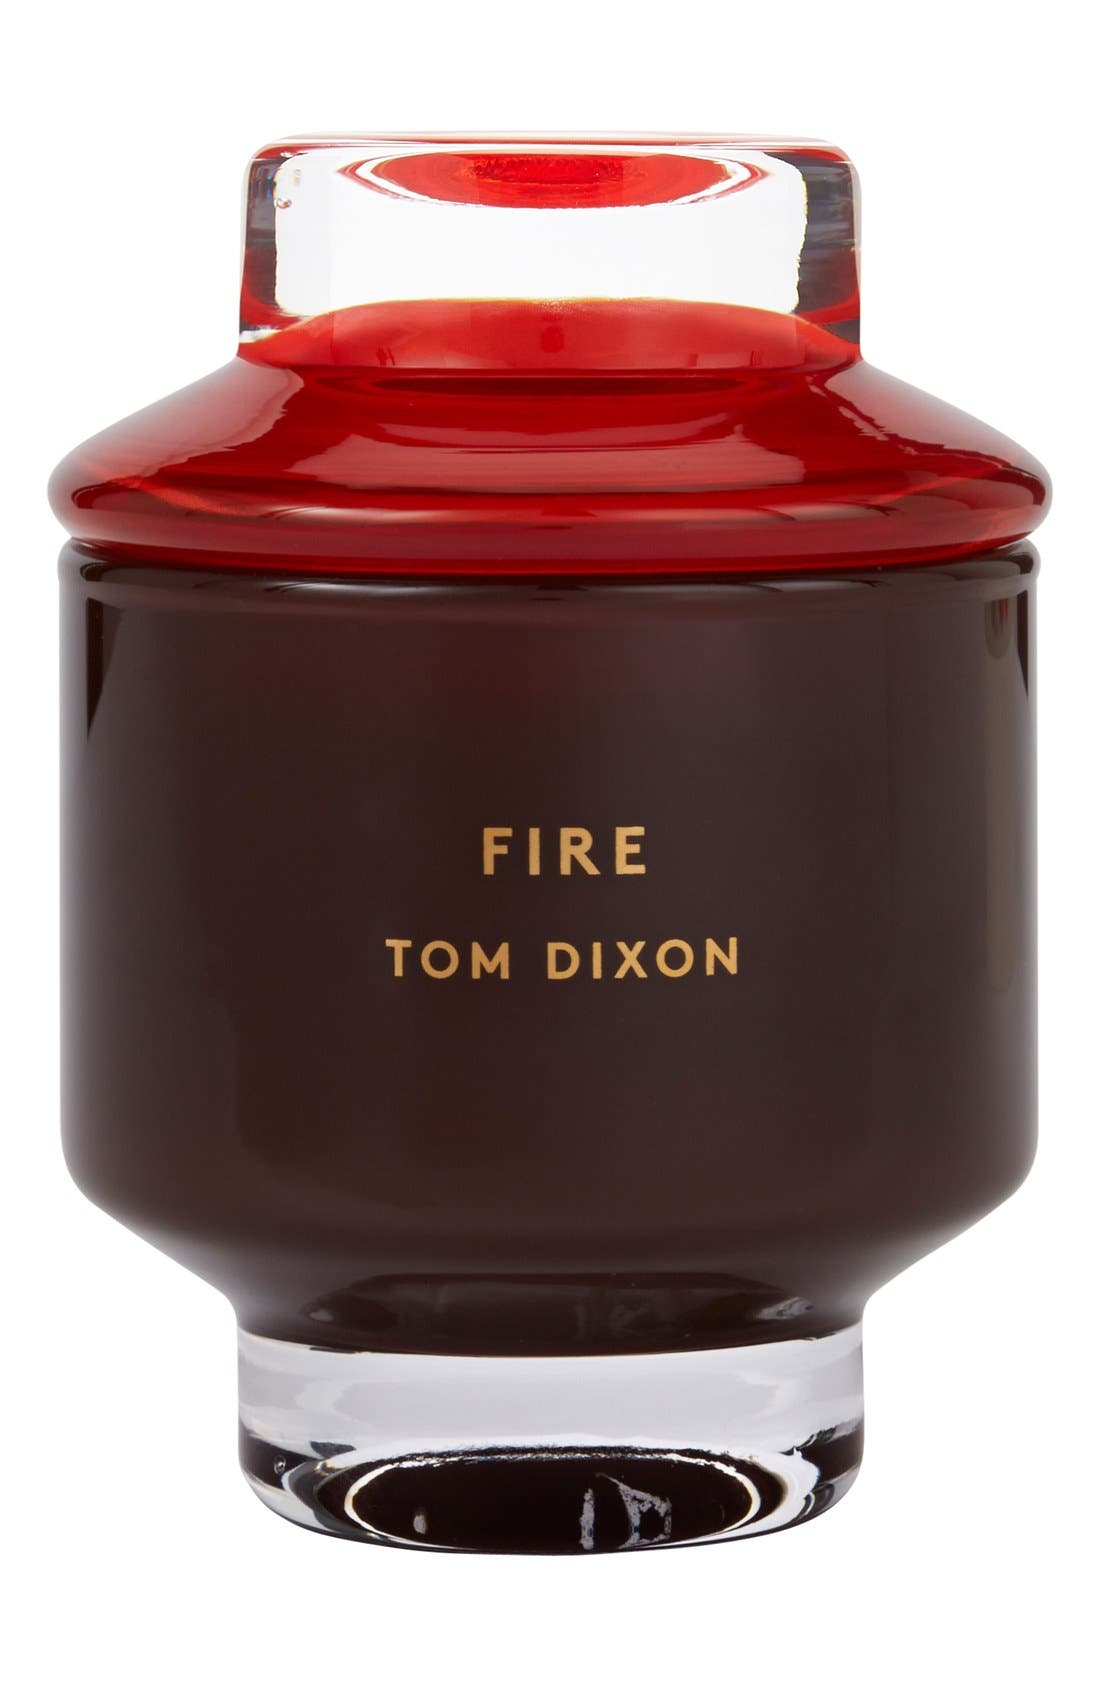 Main Image - Tom Dixon 'Fire' Candle